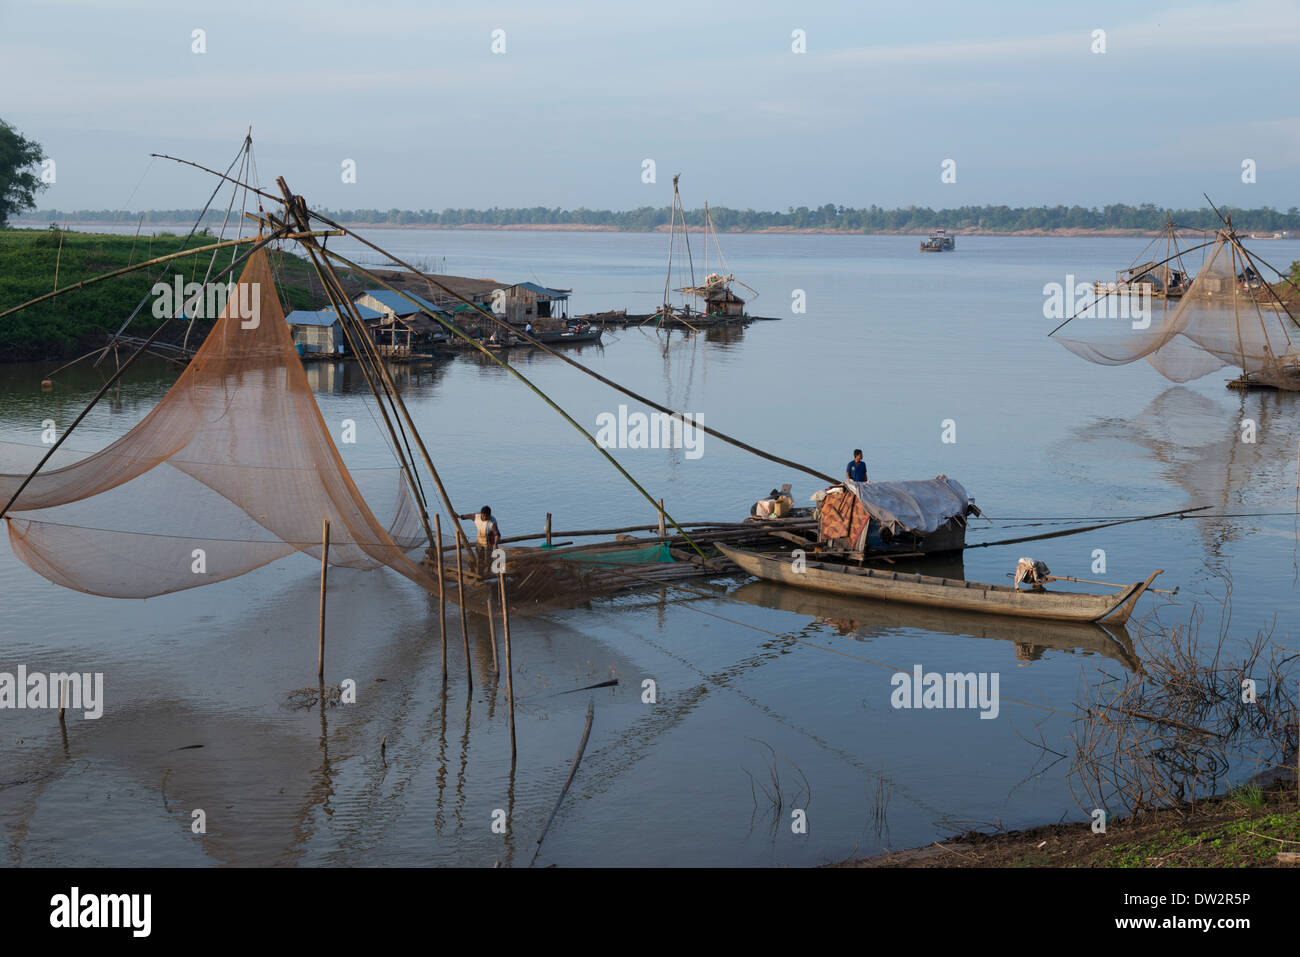 Fishing barge with large net on a Mekong tributary. Kratie area. Cambodia. Stock Photo